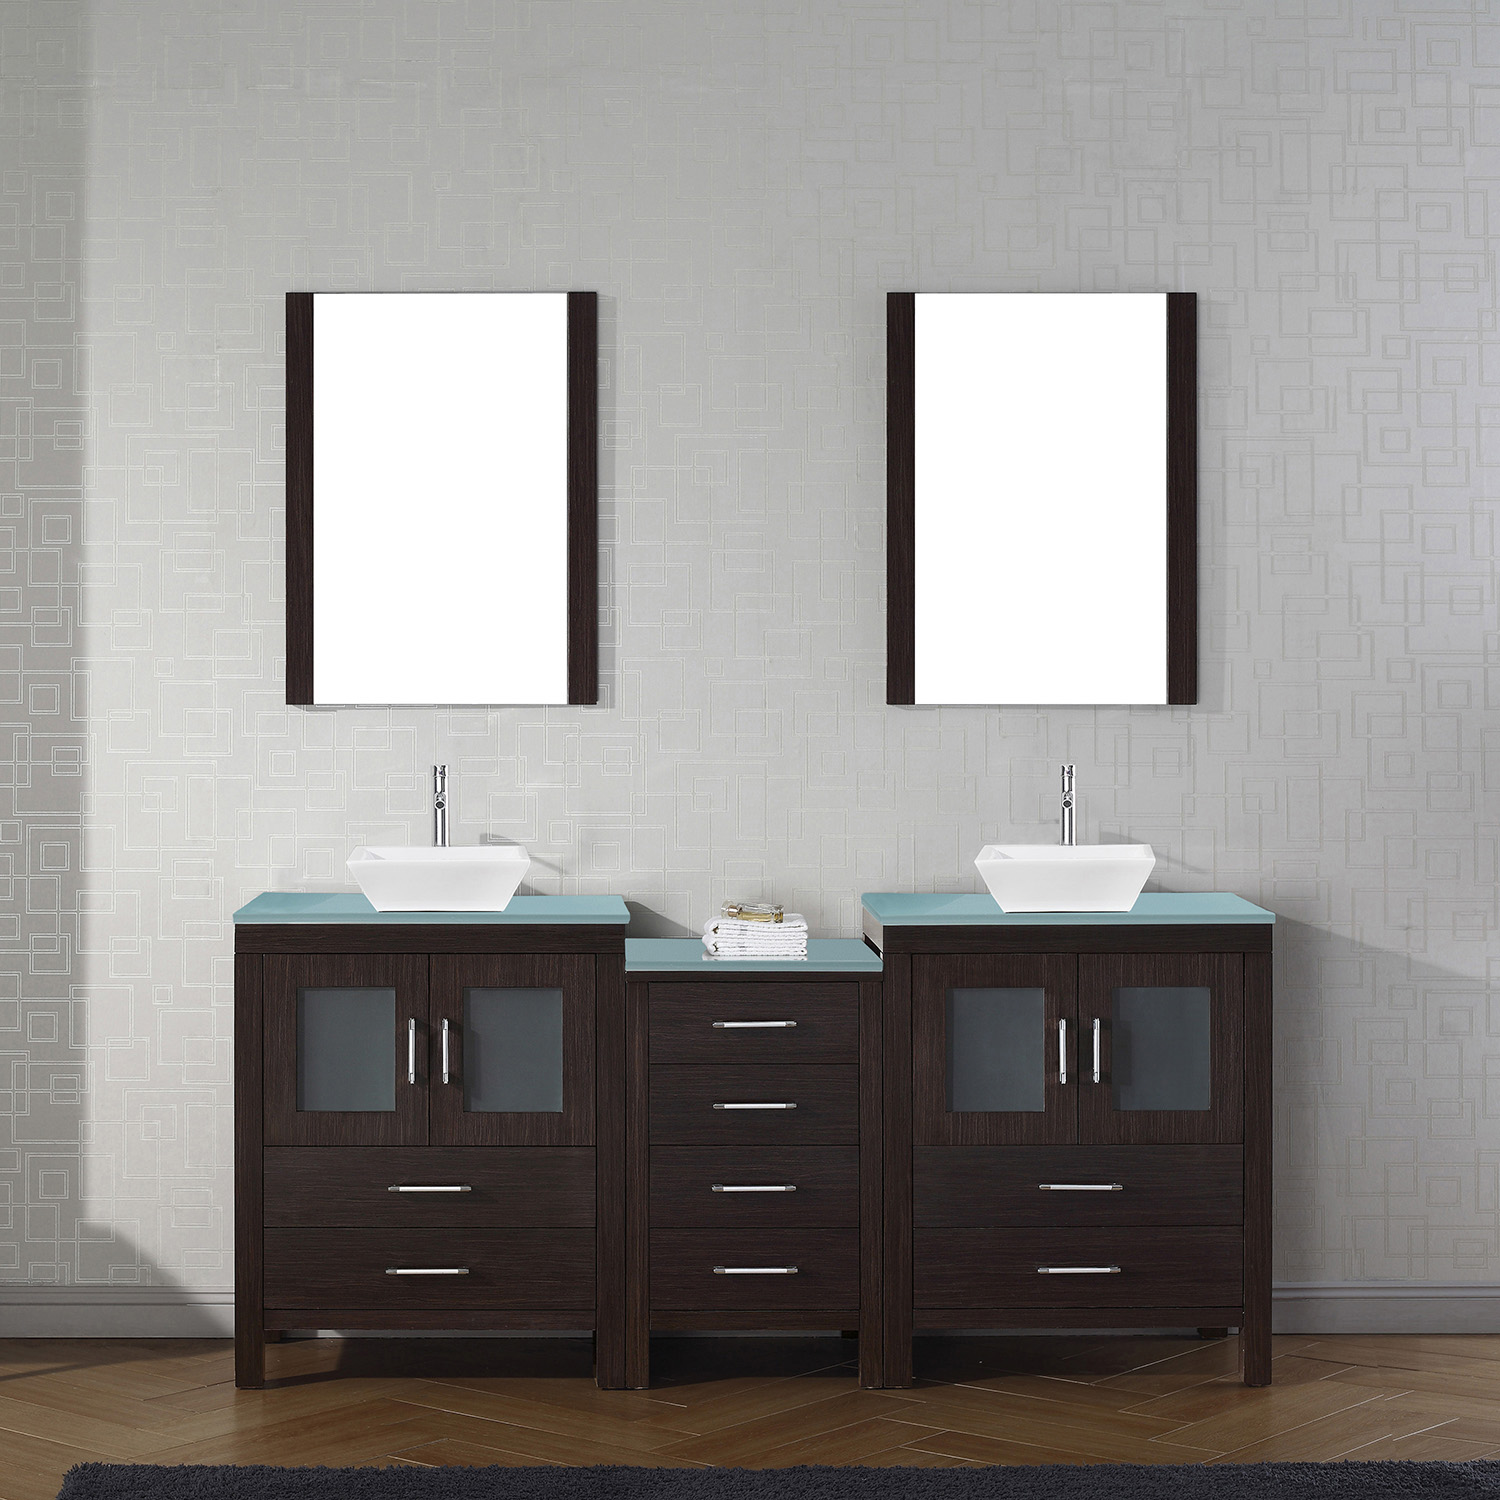 """74"""" Double Bath Vanity in Espresso with Aqua Tempered Glass Top and Square Sink with Brushed Nickel Faucet and Mirrors"""